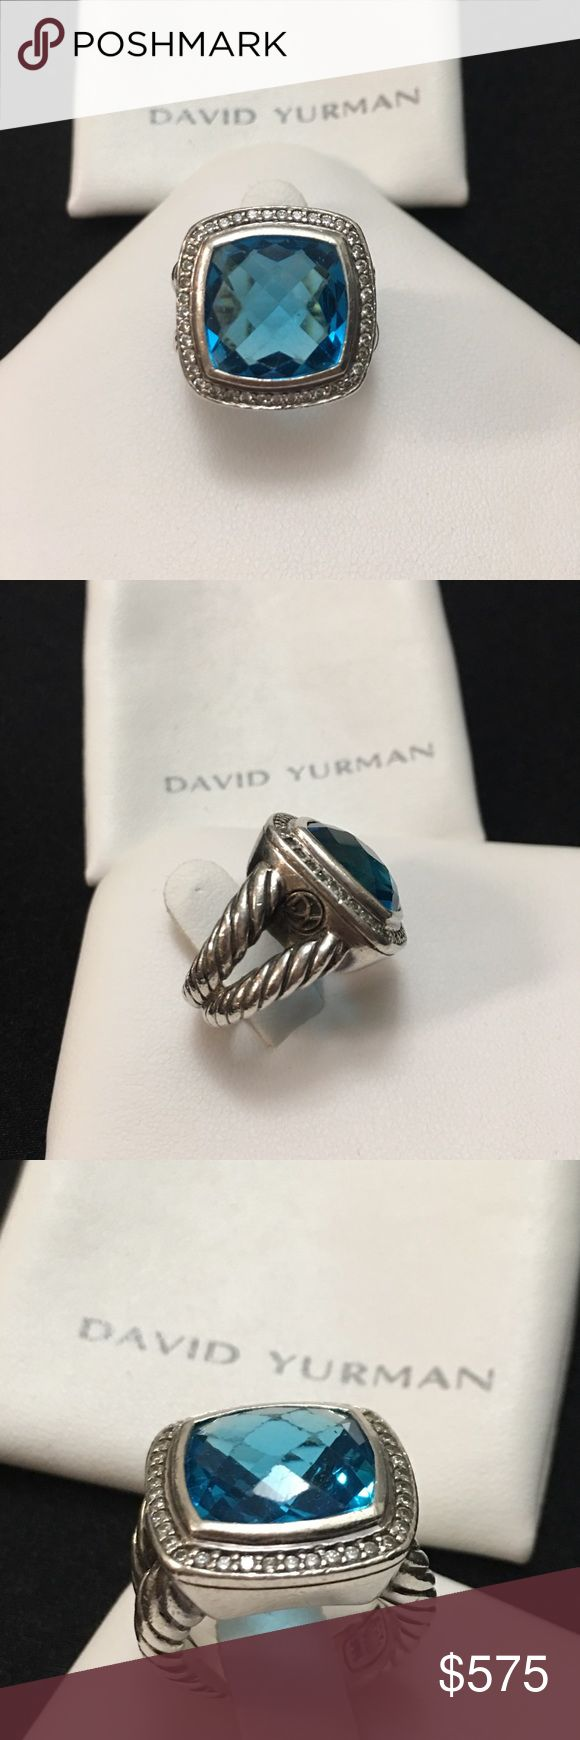 Pre💙 DY Topaz with diamonds ring 💯 authentic David Yurman albion ring set in 925 with approx  0.30 tcw of diamonds. Ring is stamp with DY 925 and the copyright symbol inside the band. Blue stone has some scratches as well as the band due to wear but the ring is still beautiful that people will compliment of. Ring is bold, thick and heavy. Its a size 5 and comes with its original pouch. This ring retails for over $900 in DY site and some is over $1k. David Yurman Jewelry Rings